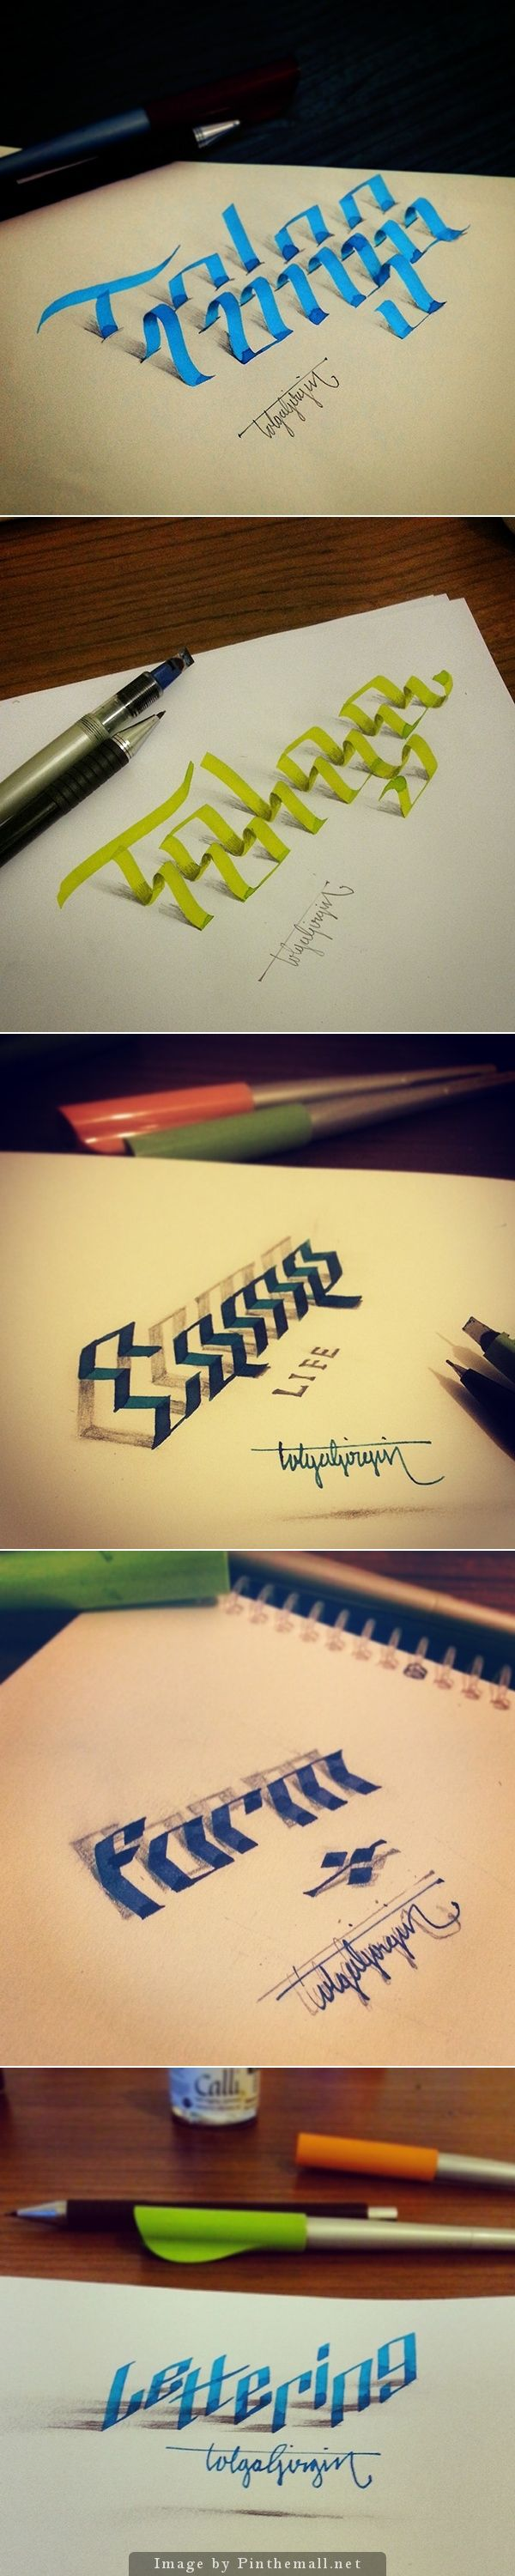 3D type by Tolga Girgin... - a grouped images picture